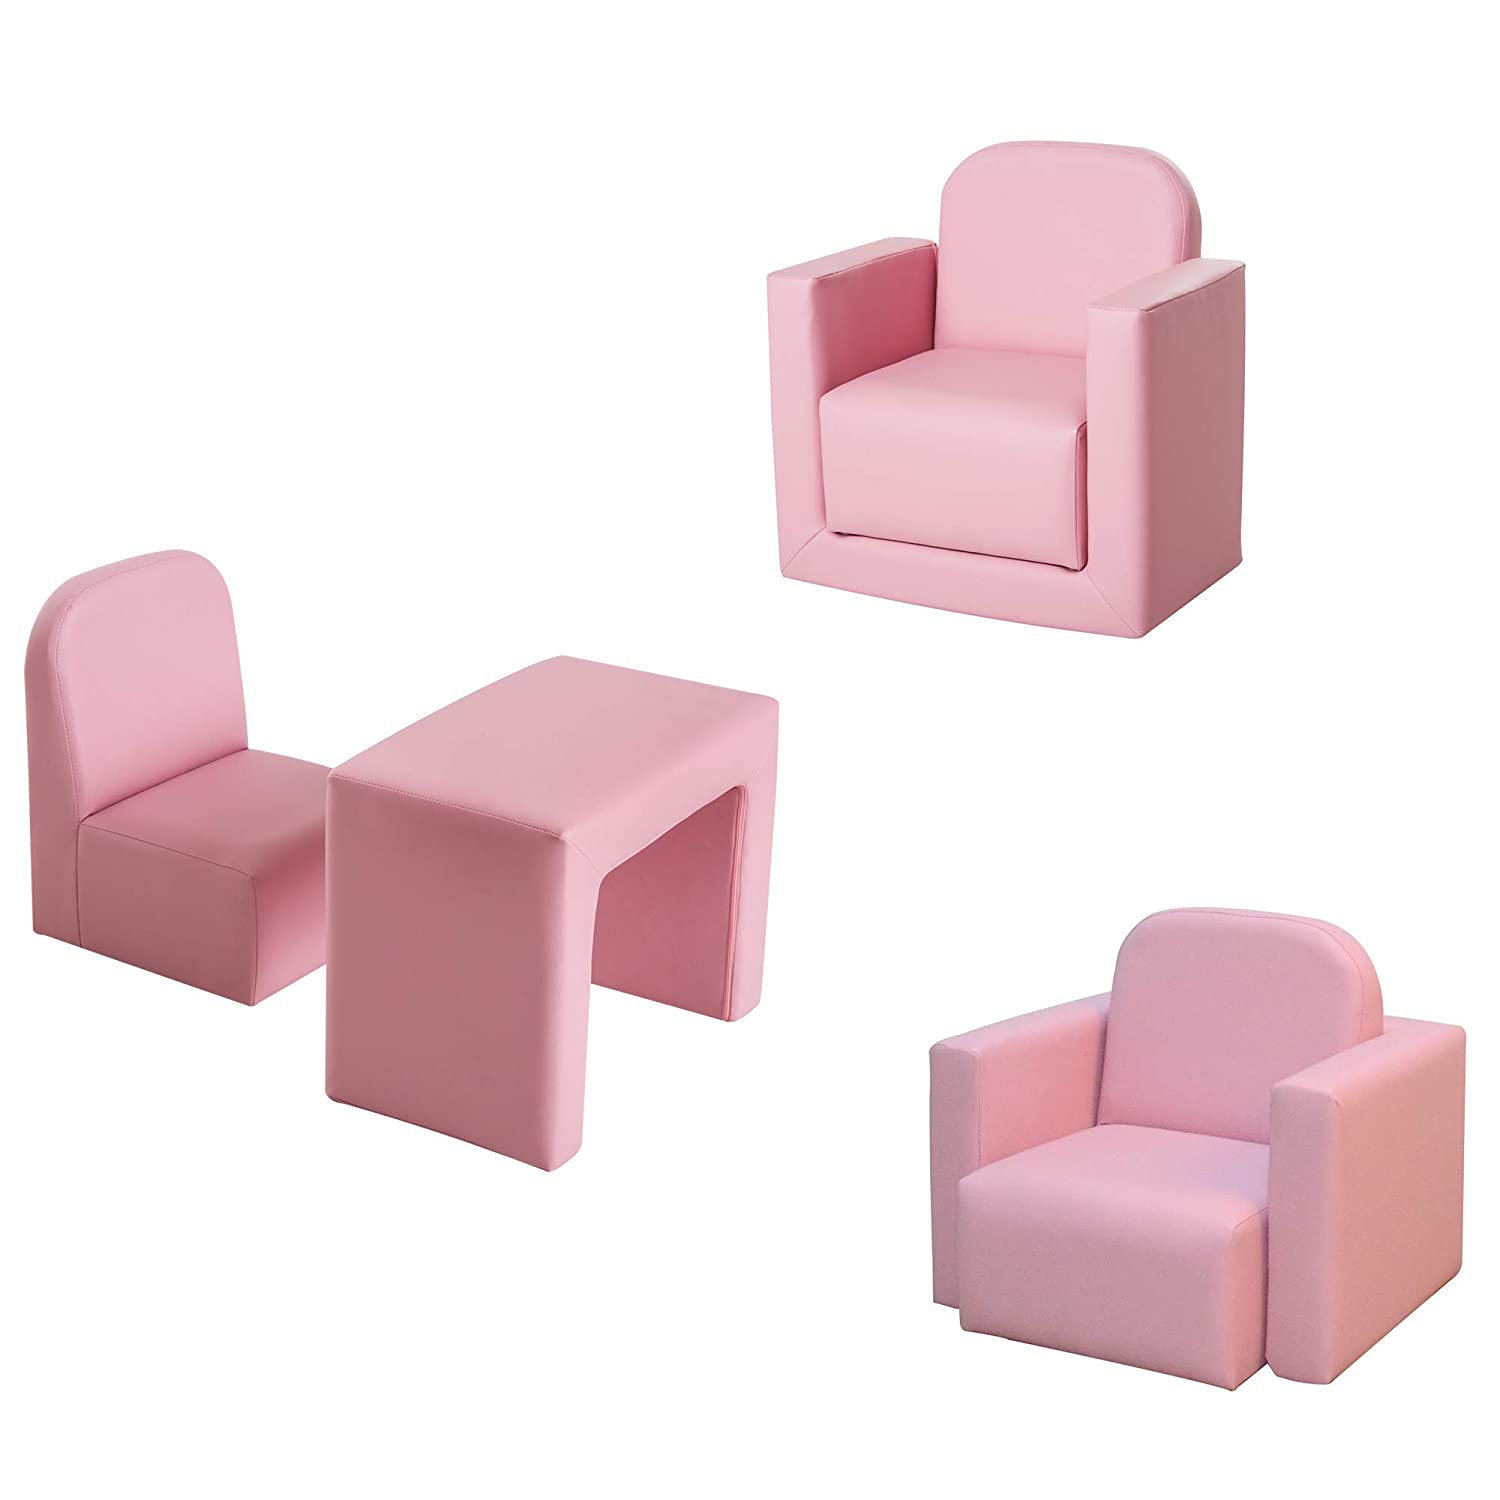 HOMCOM Kids Mini Sofa 3 in 1 Table Chair Set Armchair Seat Game Relax Playroom Seater Children Girl Boys Pink Sold by MHSTAR UK310-021PK0331